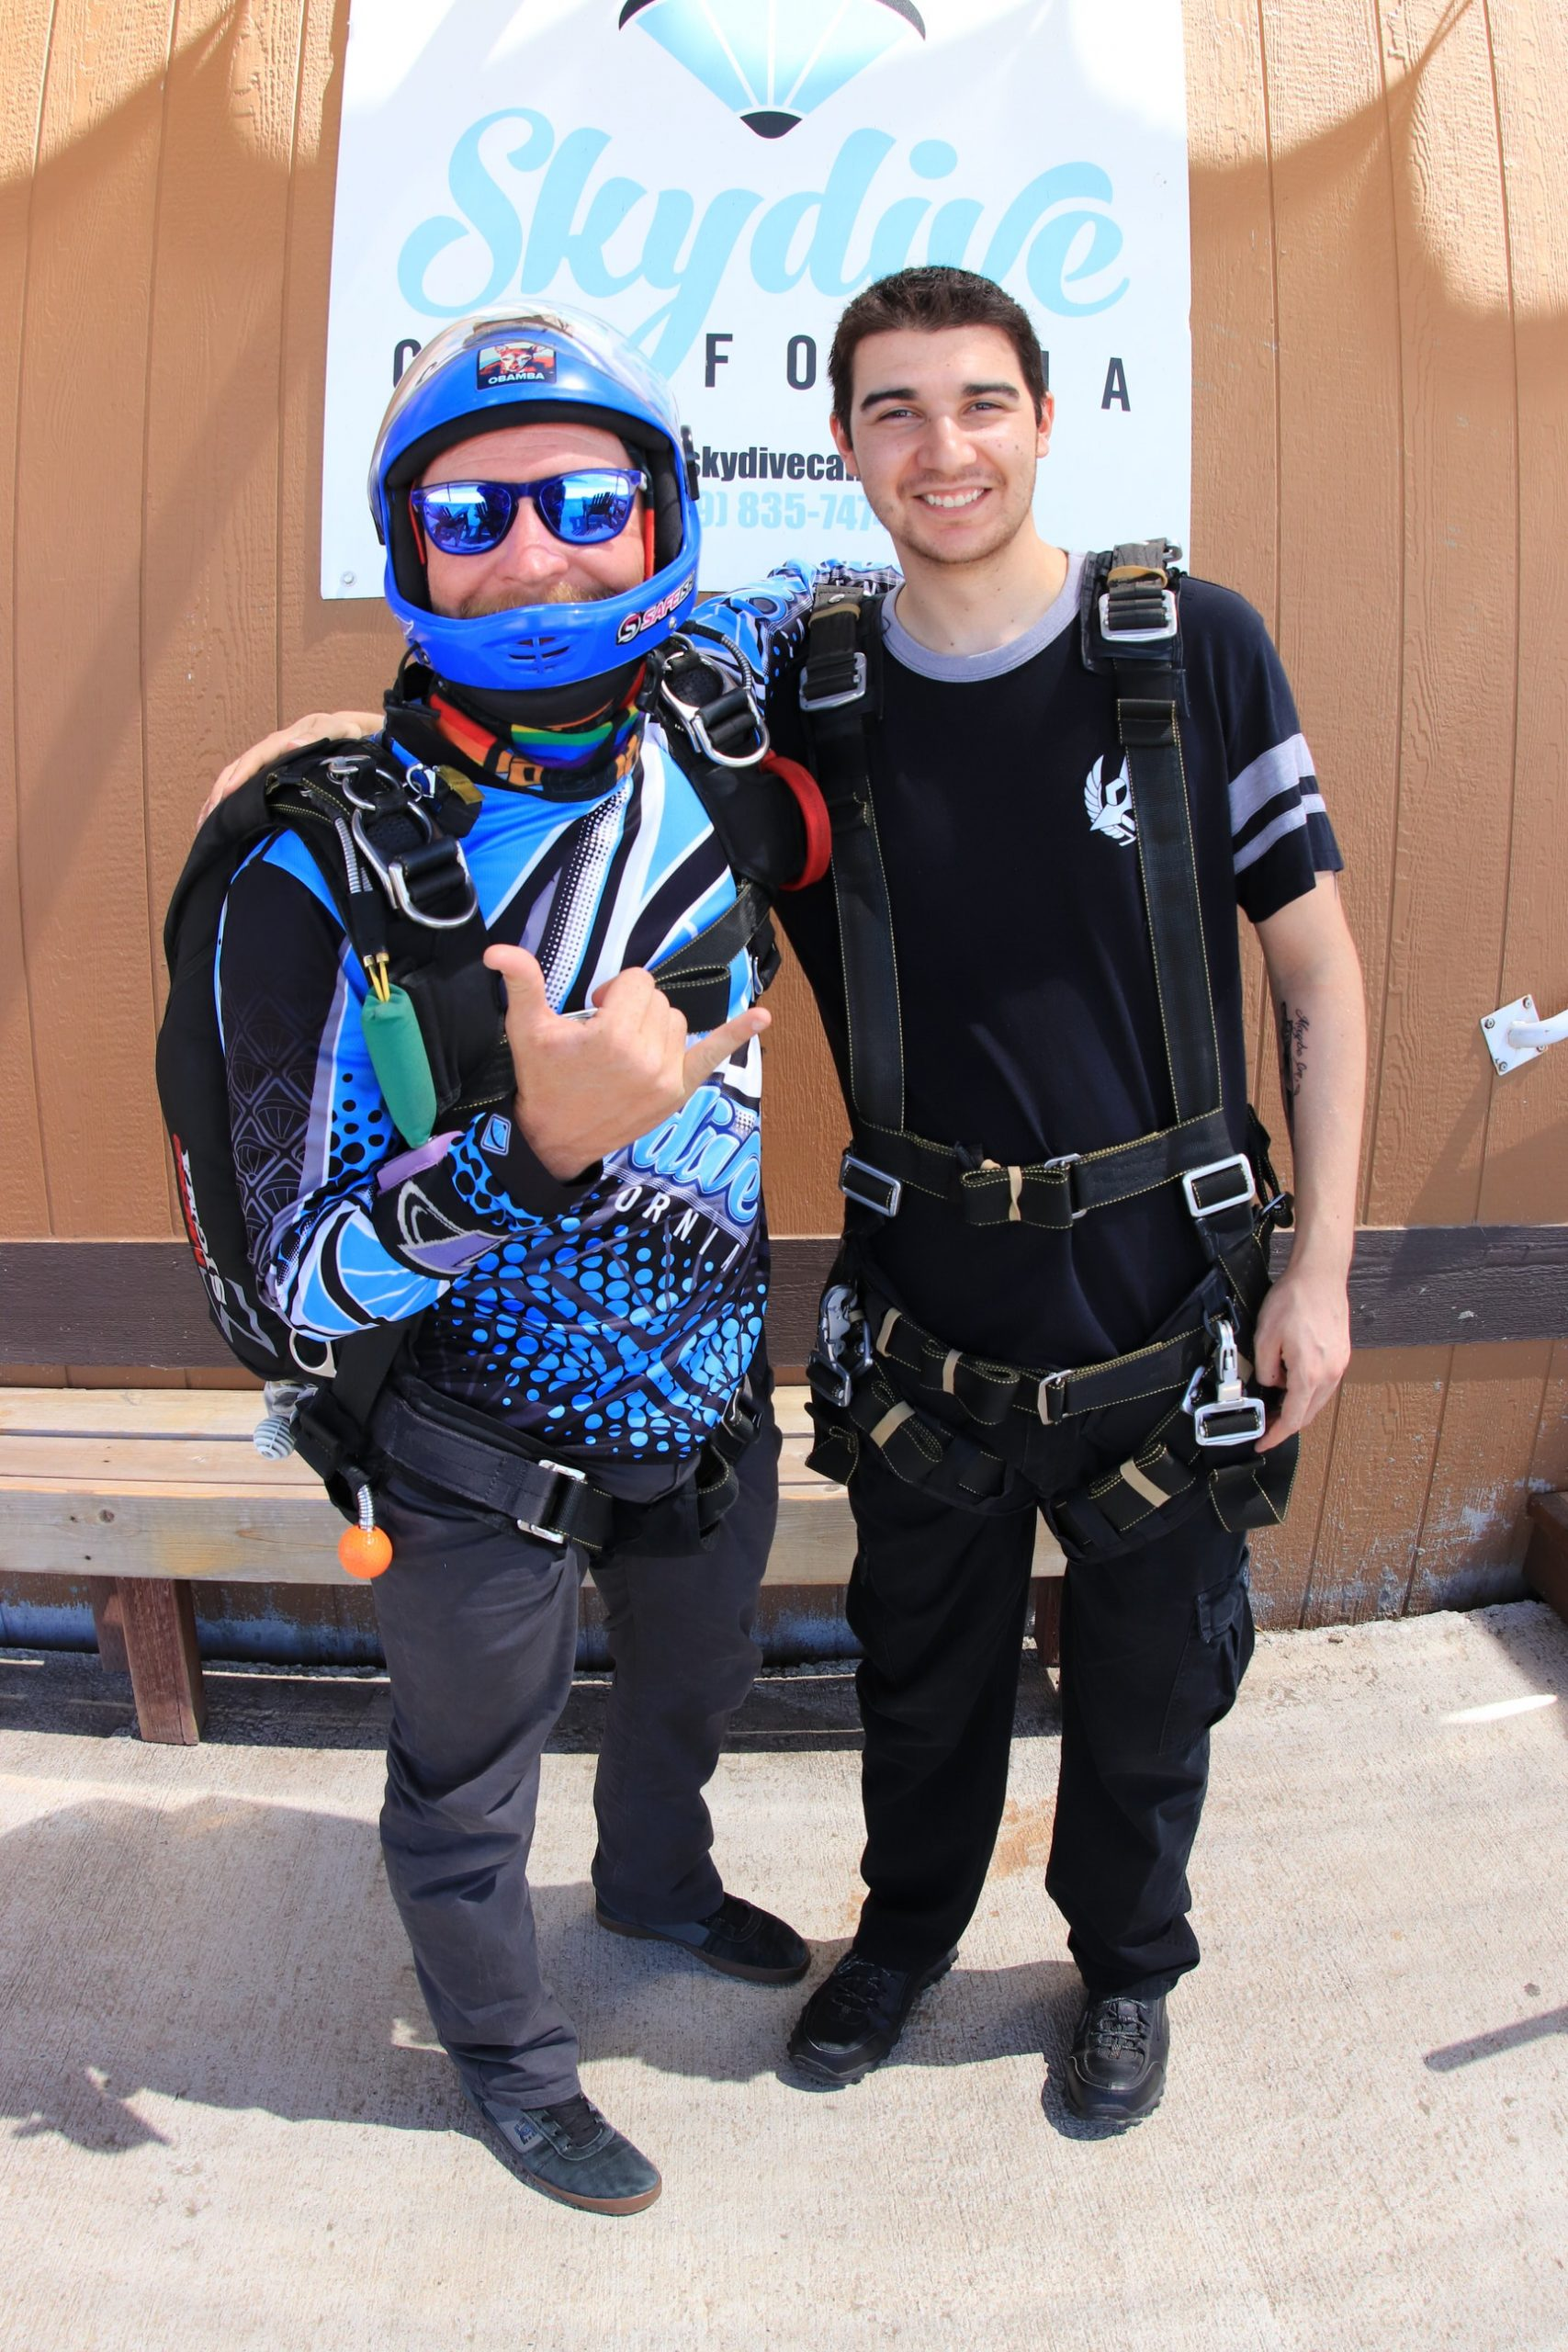 tandem skydiving instructor skydiving experience description